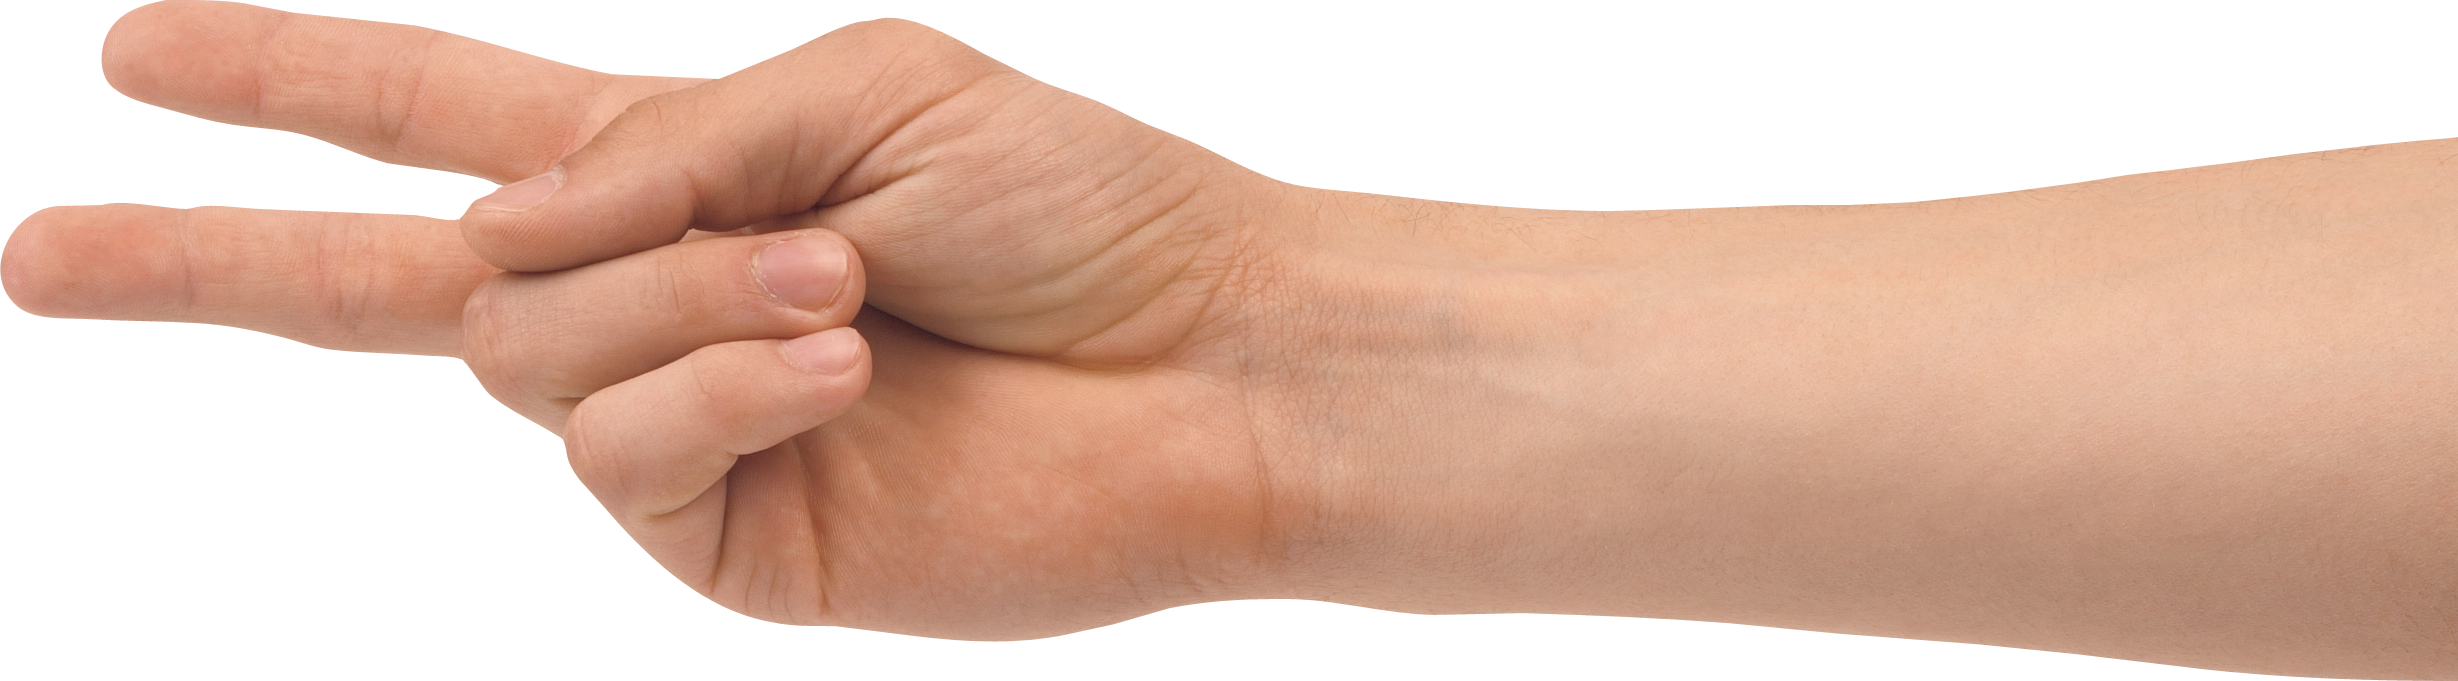 Two finger hand, hands PNG, hand image free